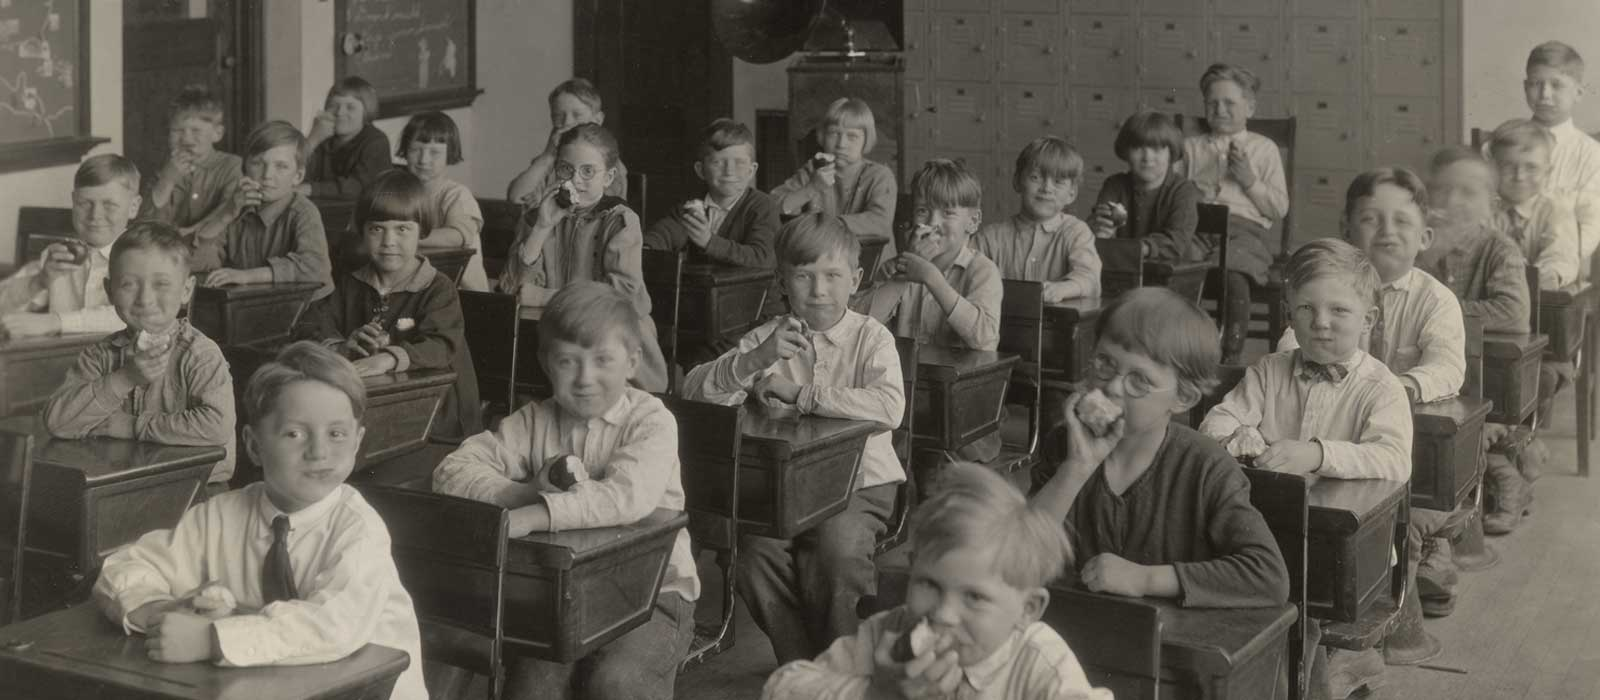 Students in Class Eating Apples - Fall